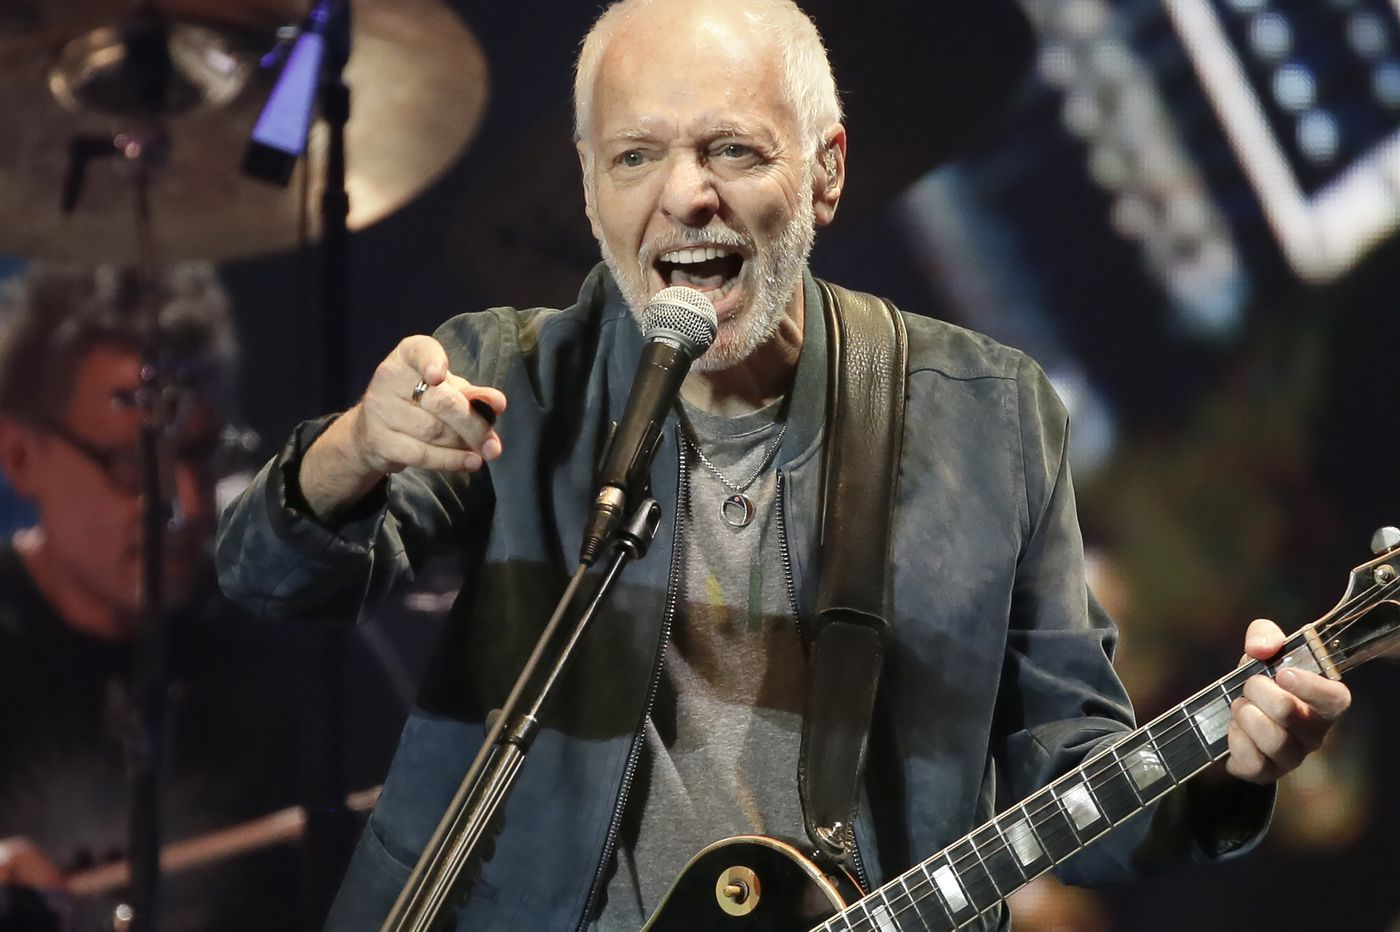 Peter Frampton plays his last Philly show at the Met before retirement